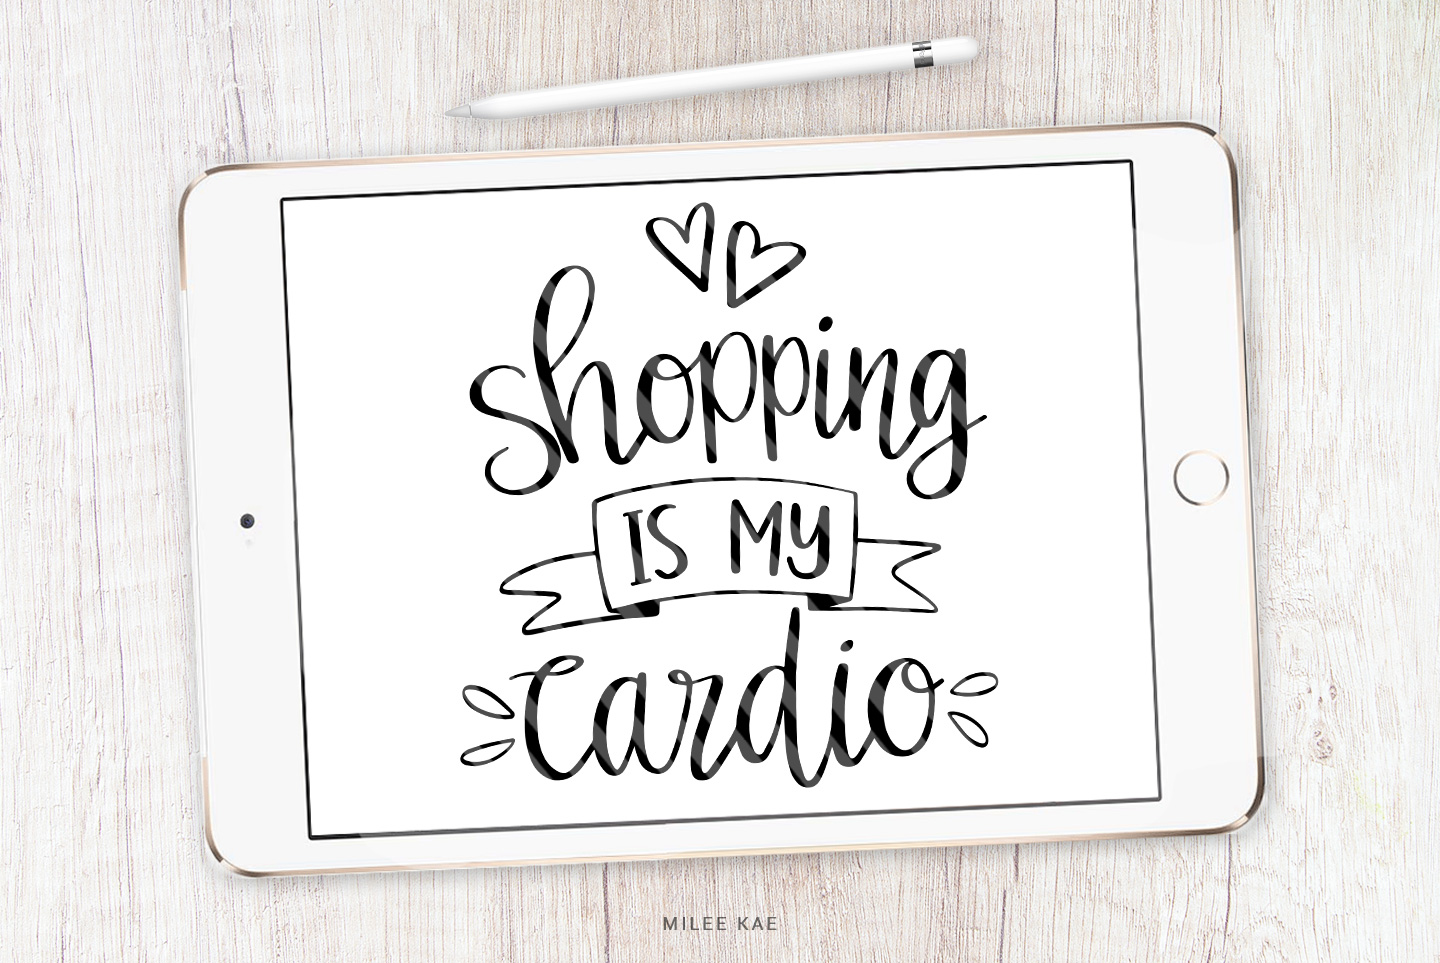 Shopping Funny Quote SVG, Cutting file, Decal example image 1